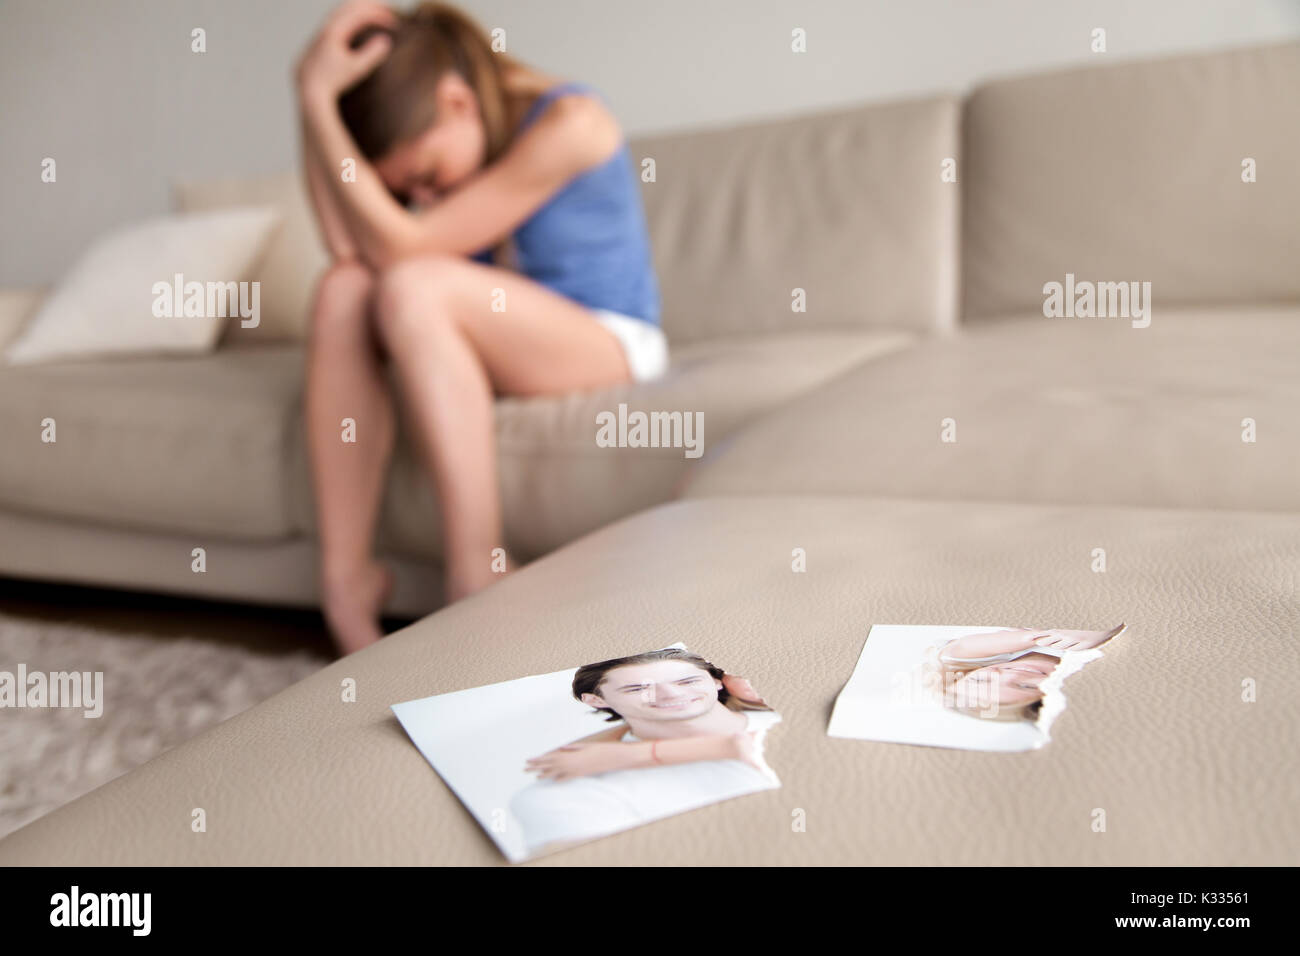 Lonely wife suffering after breakup at home - Stock Image